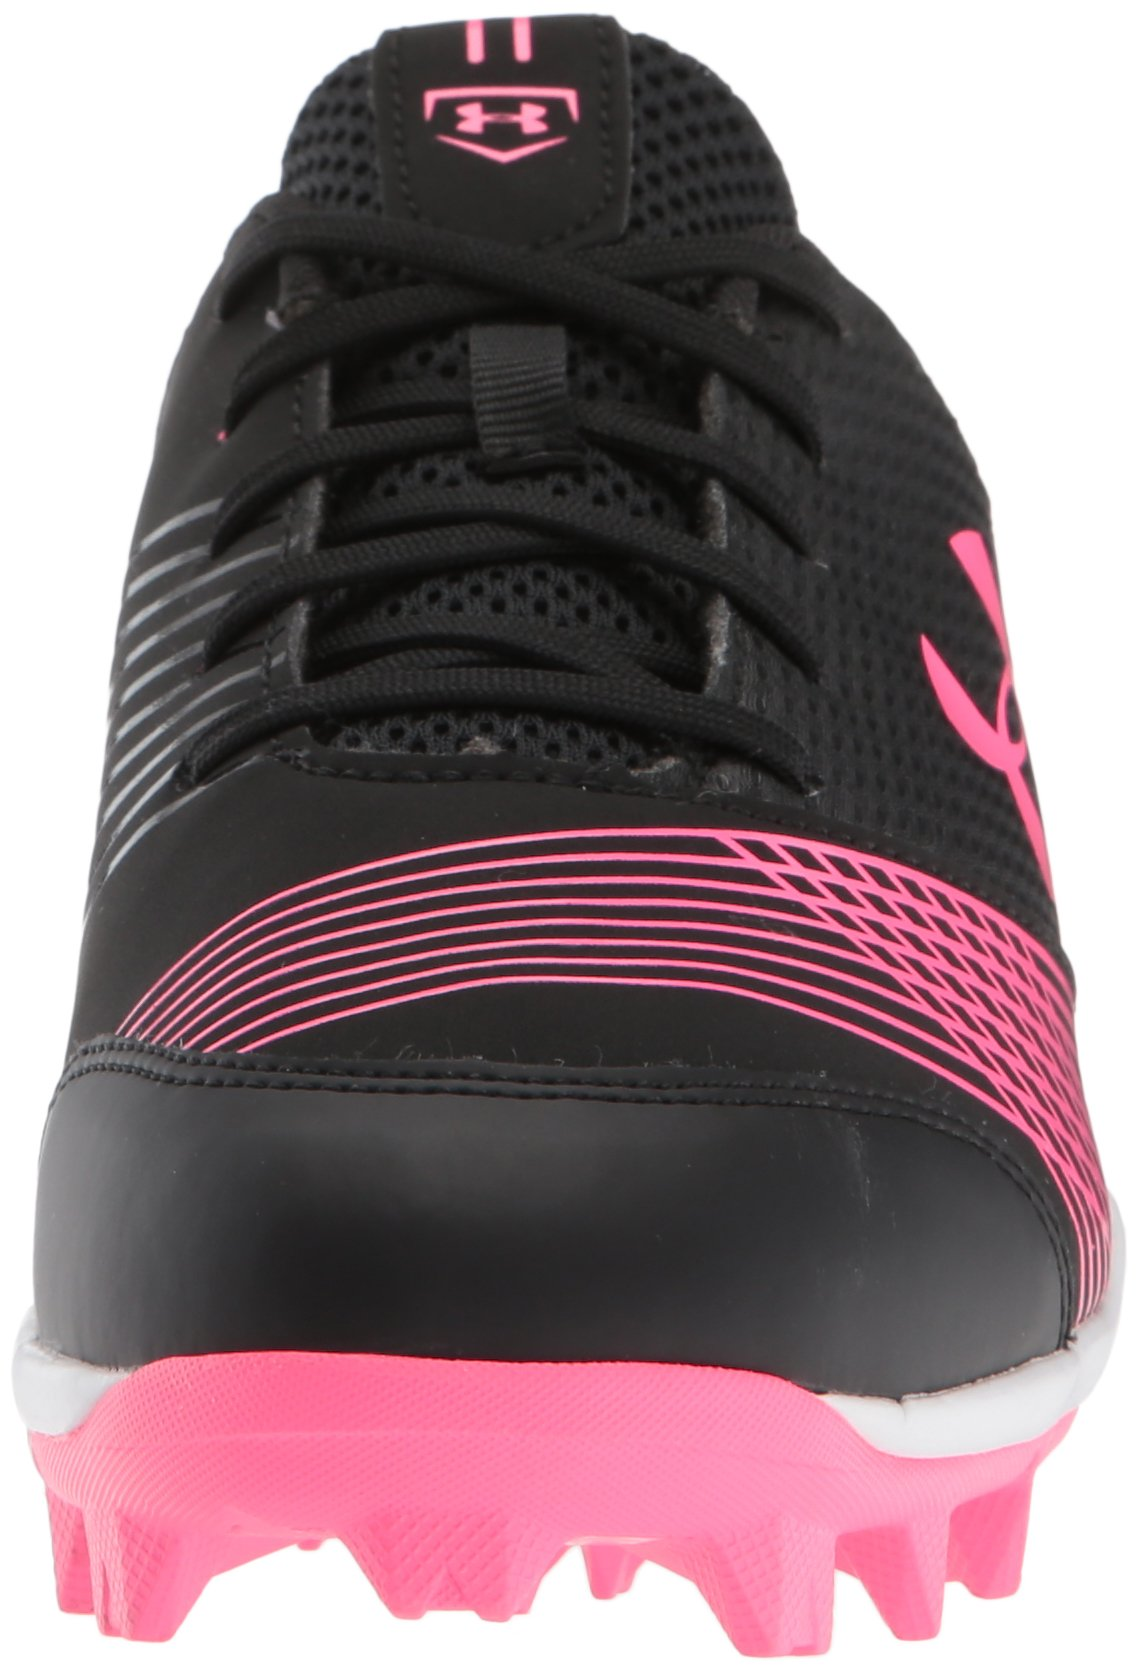 Under Armour Women's Glyde RM Softball Shoe, Black (064)/Cerise, 7 by Under Armour (Image #4)